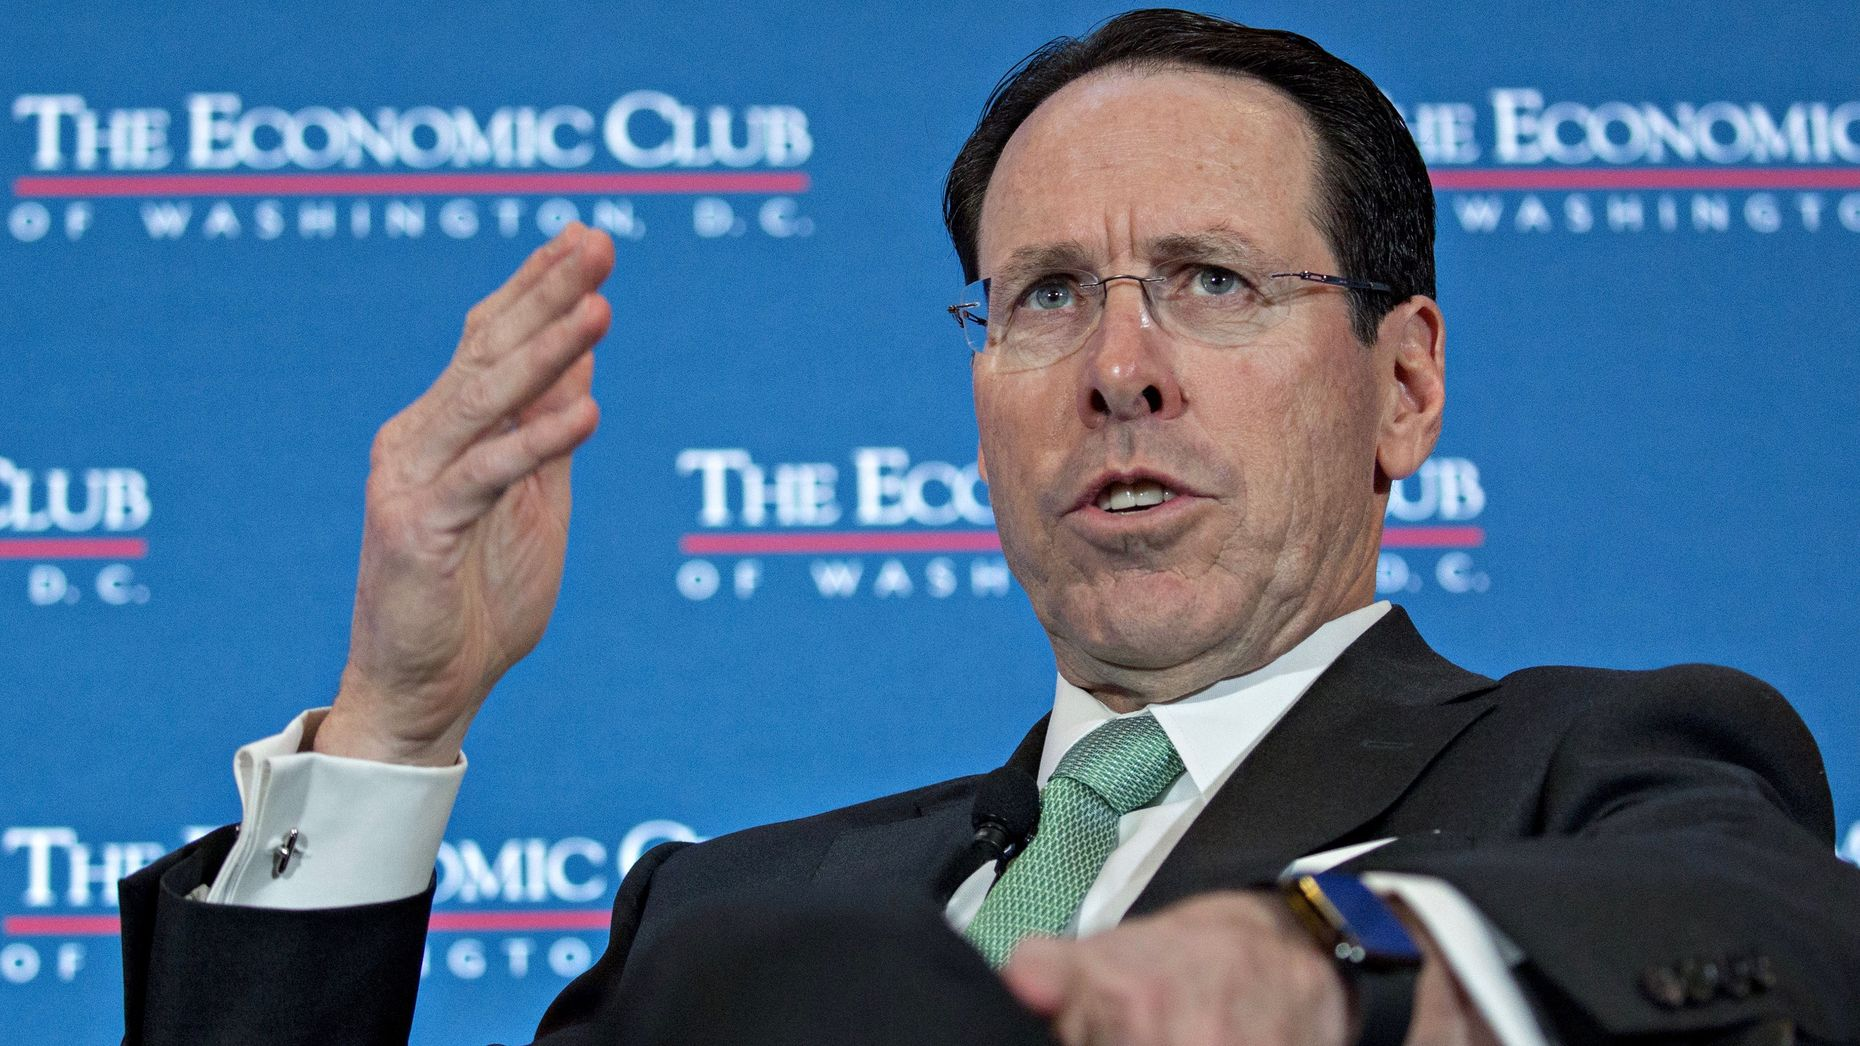 AT&T CEO Randall Stephenson. Photo by Bloomberg